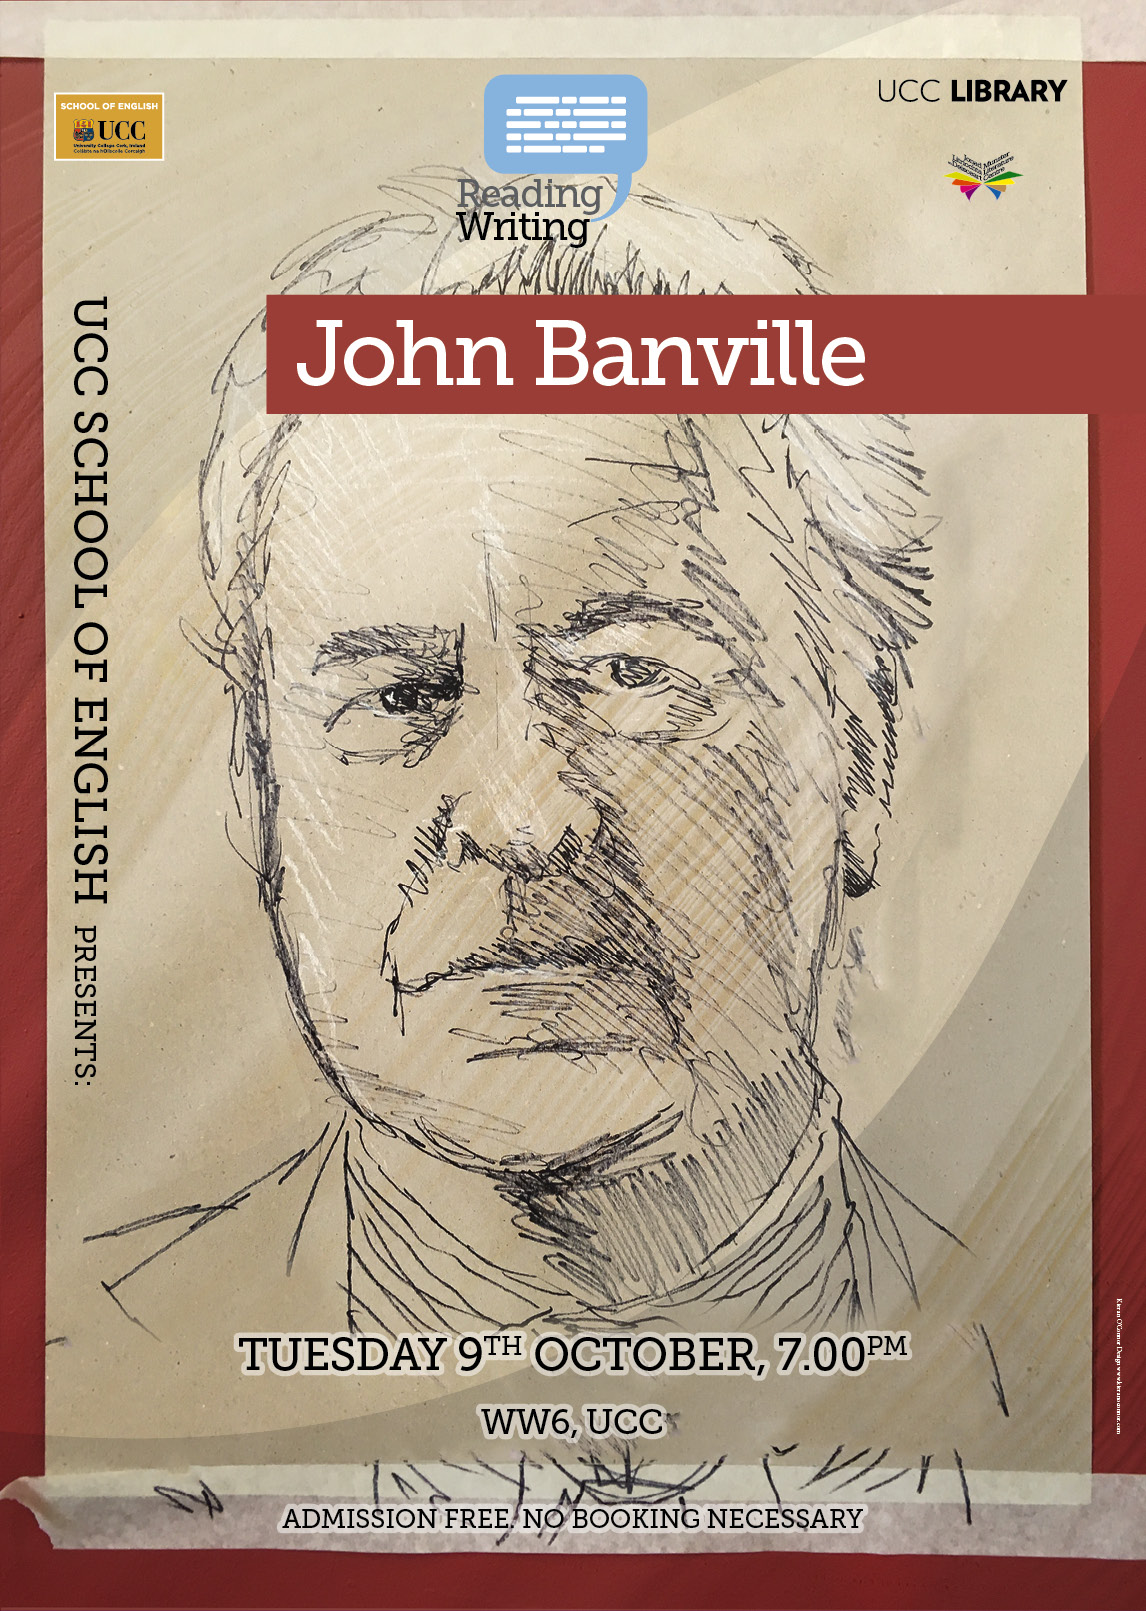 UCC's 2018/19 School of English reading series kicks off on Tuesday, October 9, with one of Ireland's leading novelists, John Banville.